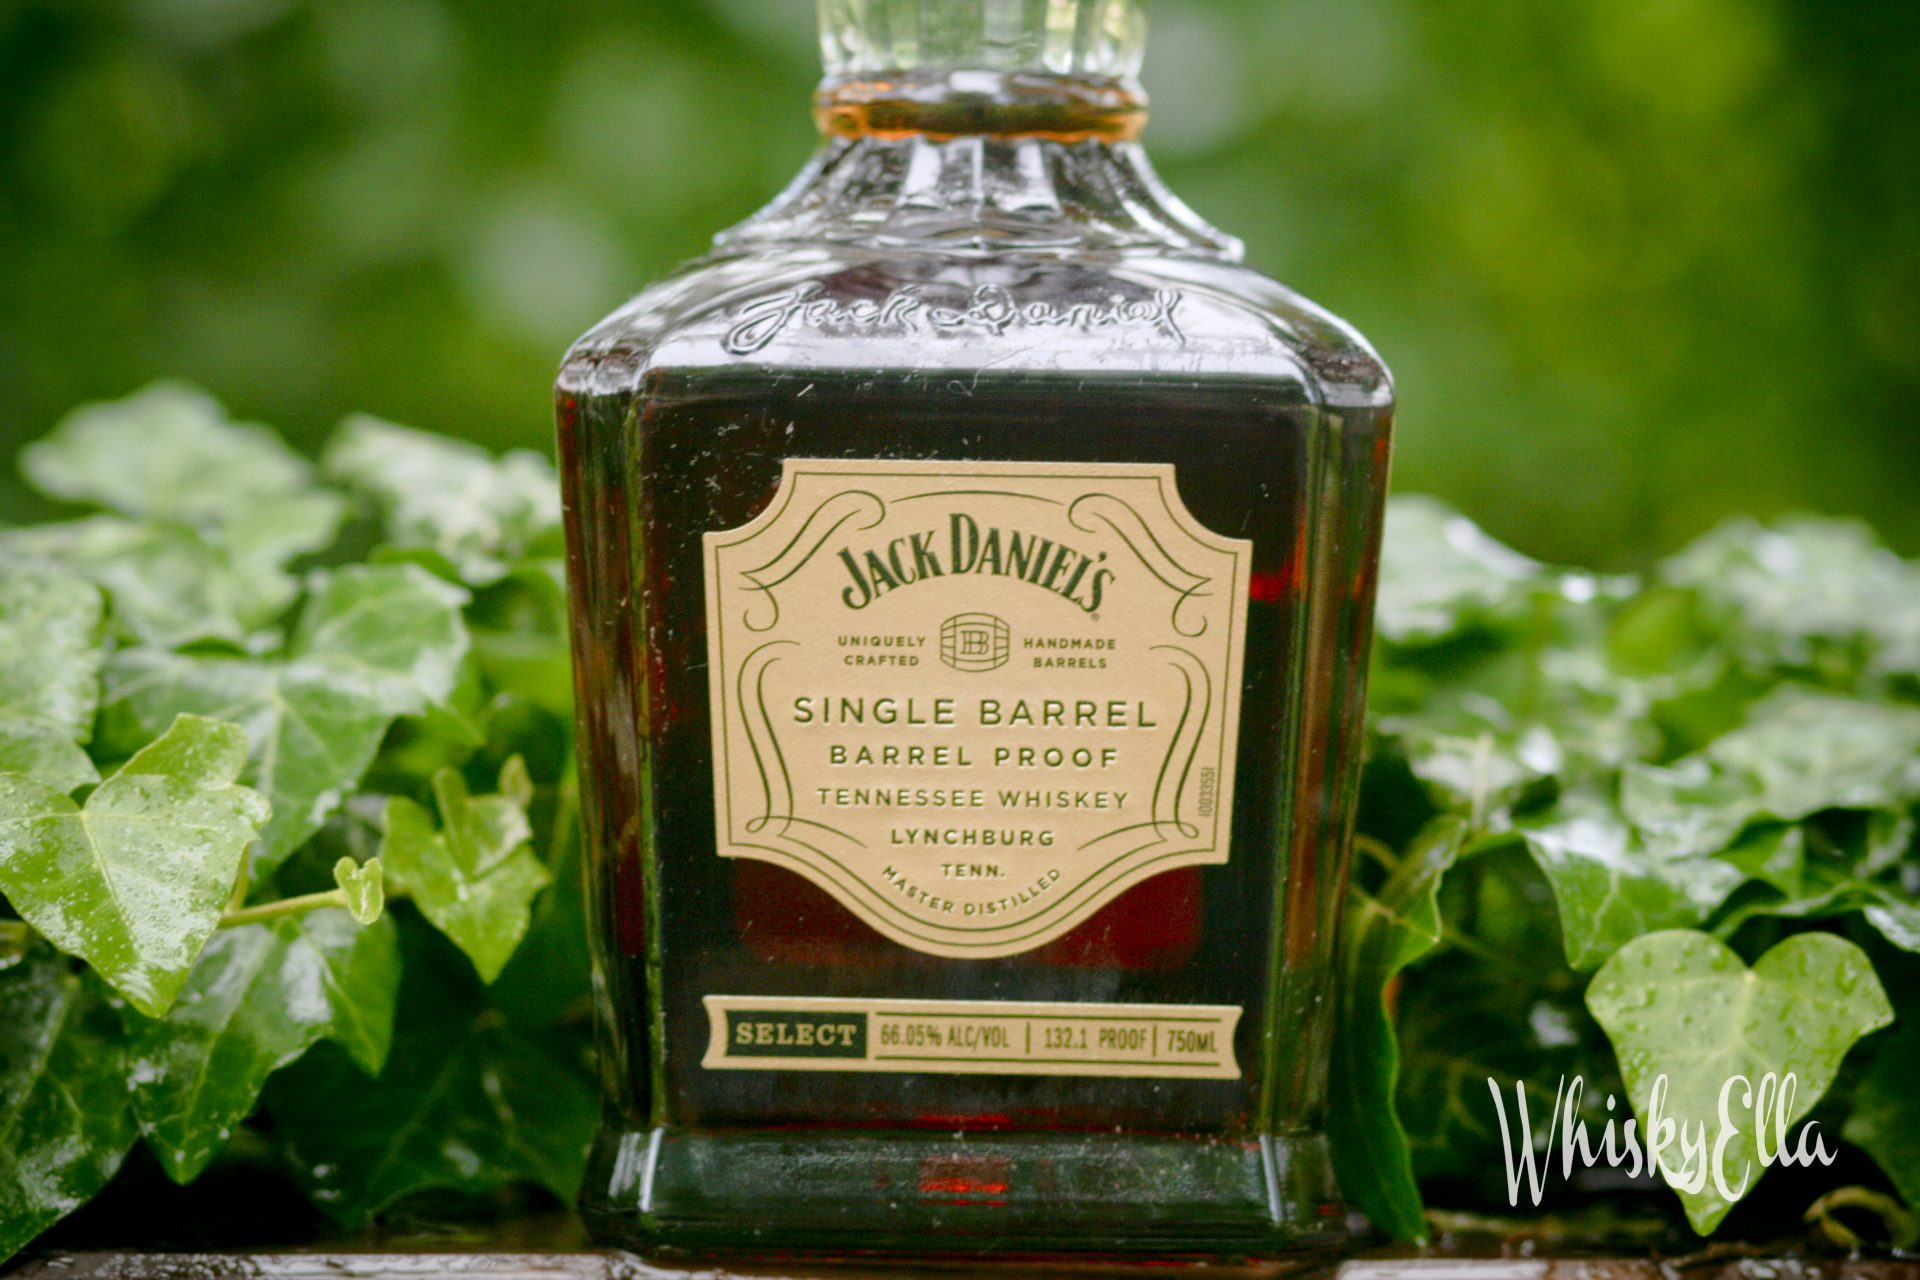 Nasza recenzja Jack Daniel's Single Barrel Barrel Proof Select 132,1 proof (66,05%), barrel no: 19-00223 #76